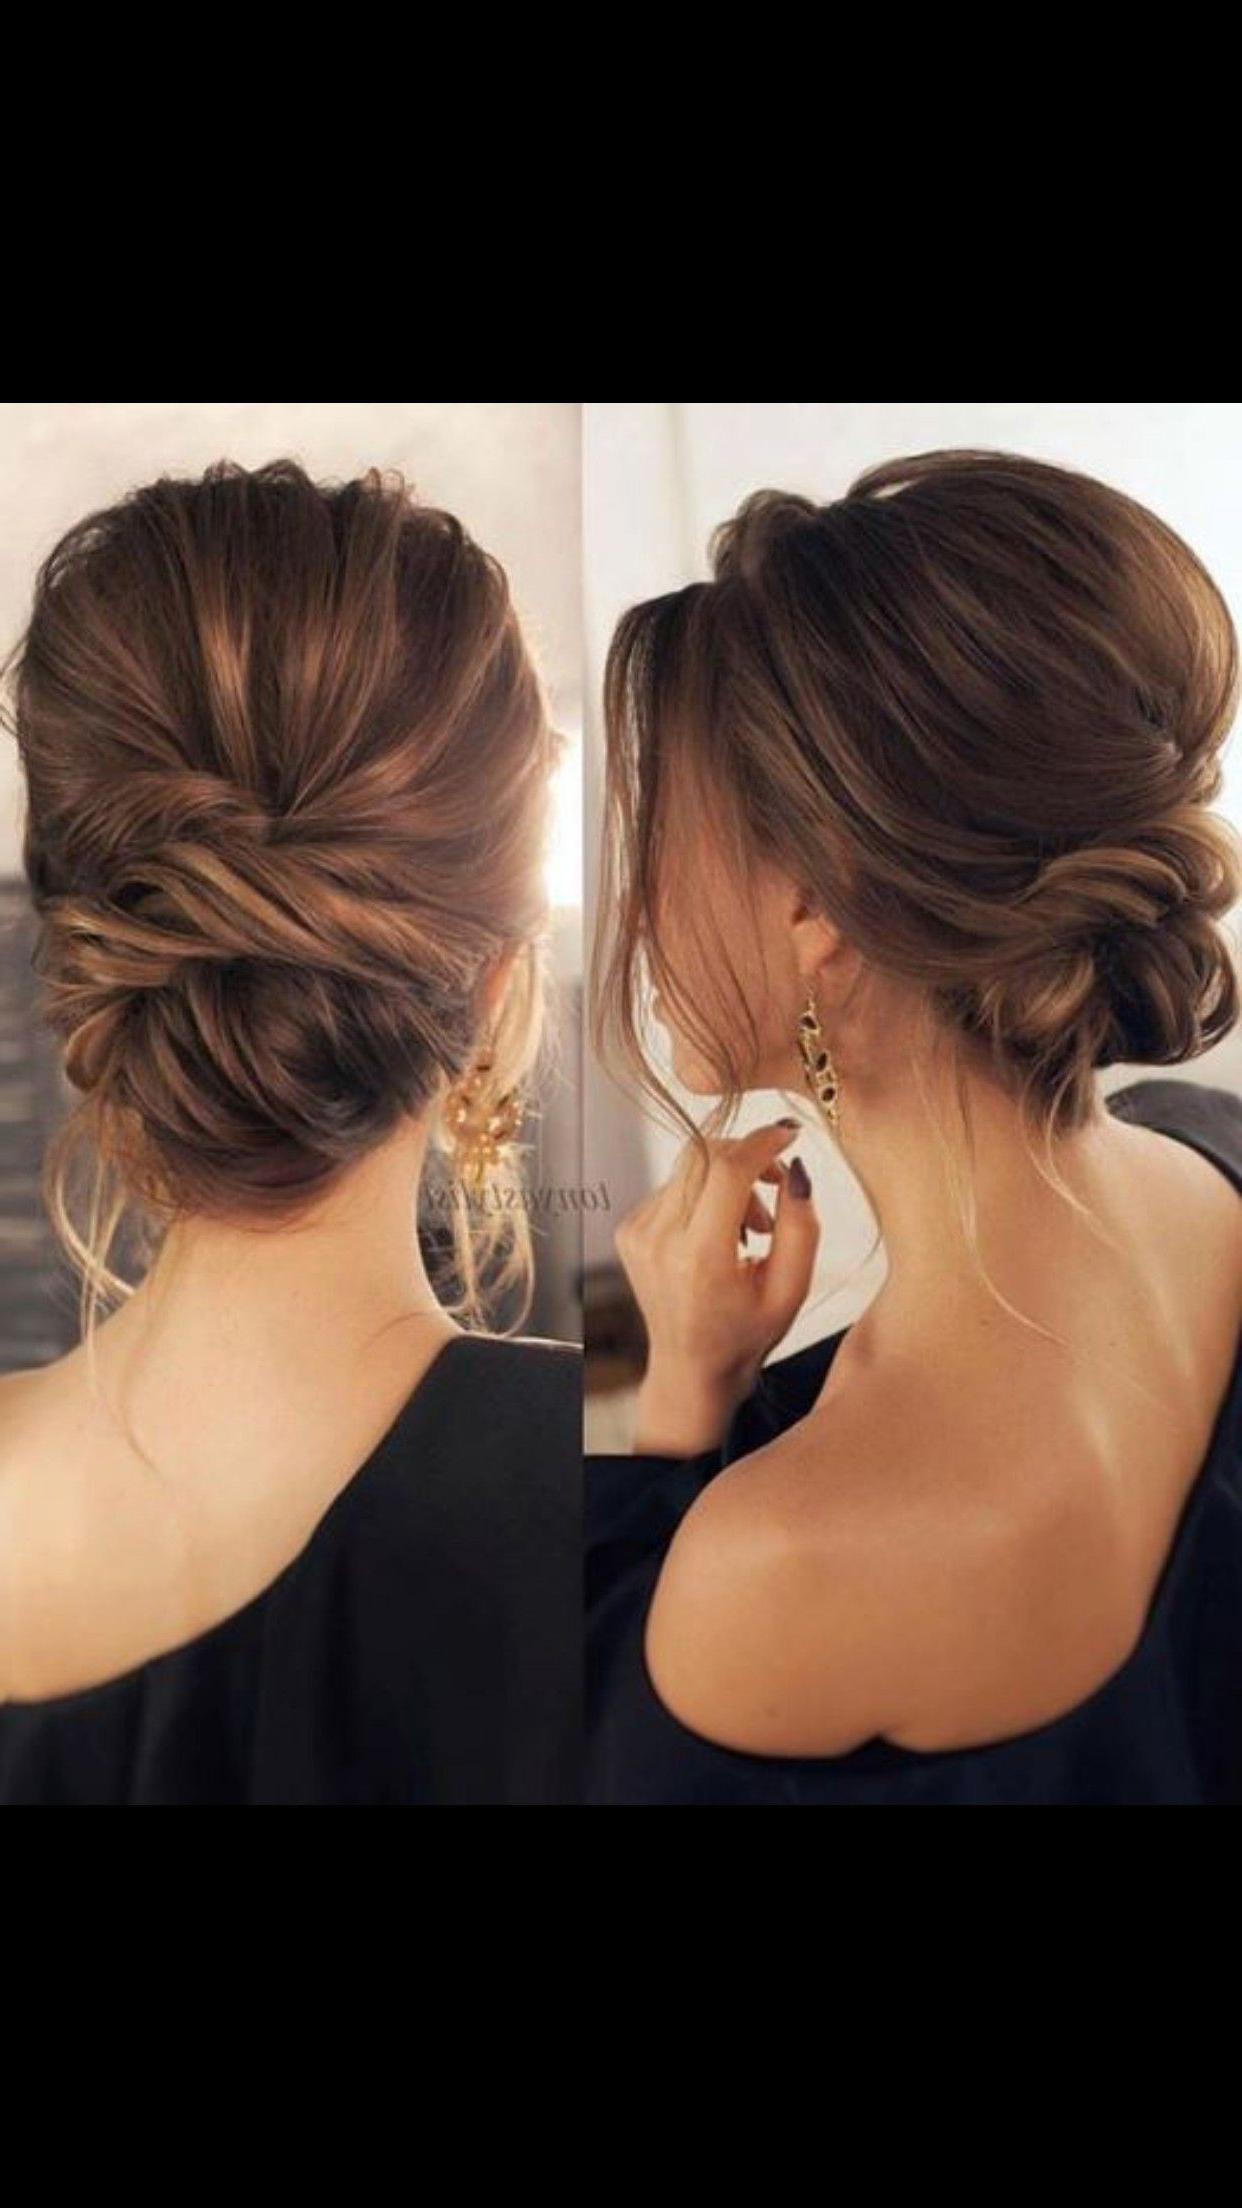 Widely Used Twisted Low Bun Hairstyles For Prom In Hairstyles : Special Occasion Hair Tutorial Low Bun With A Twist (View 11 of 20)